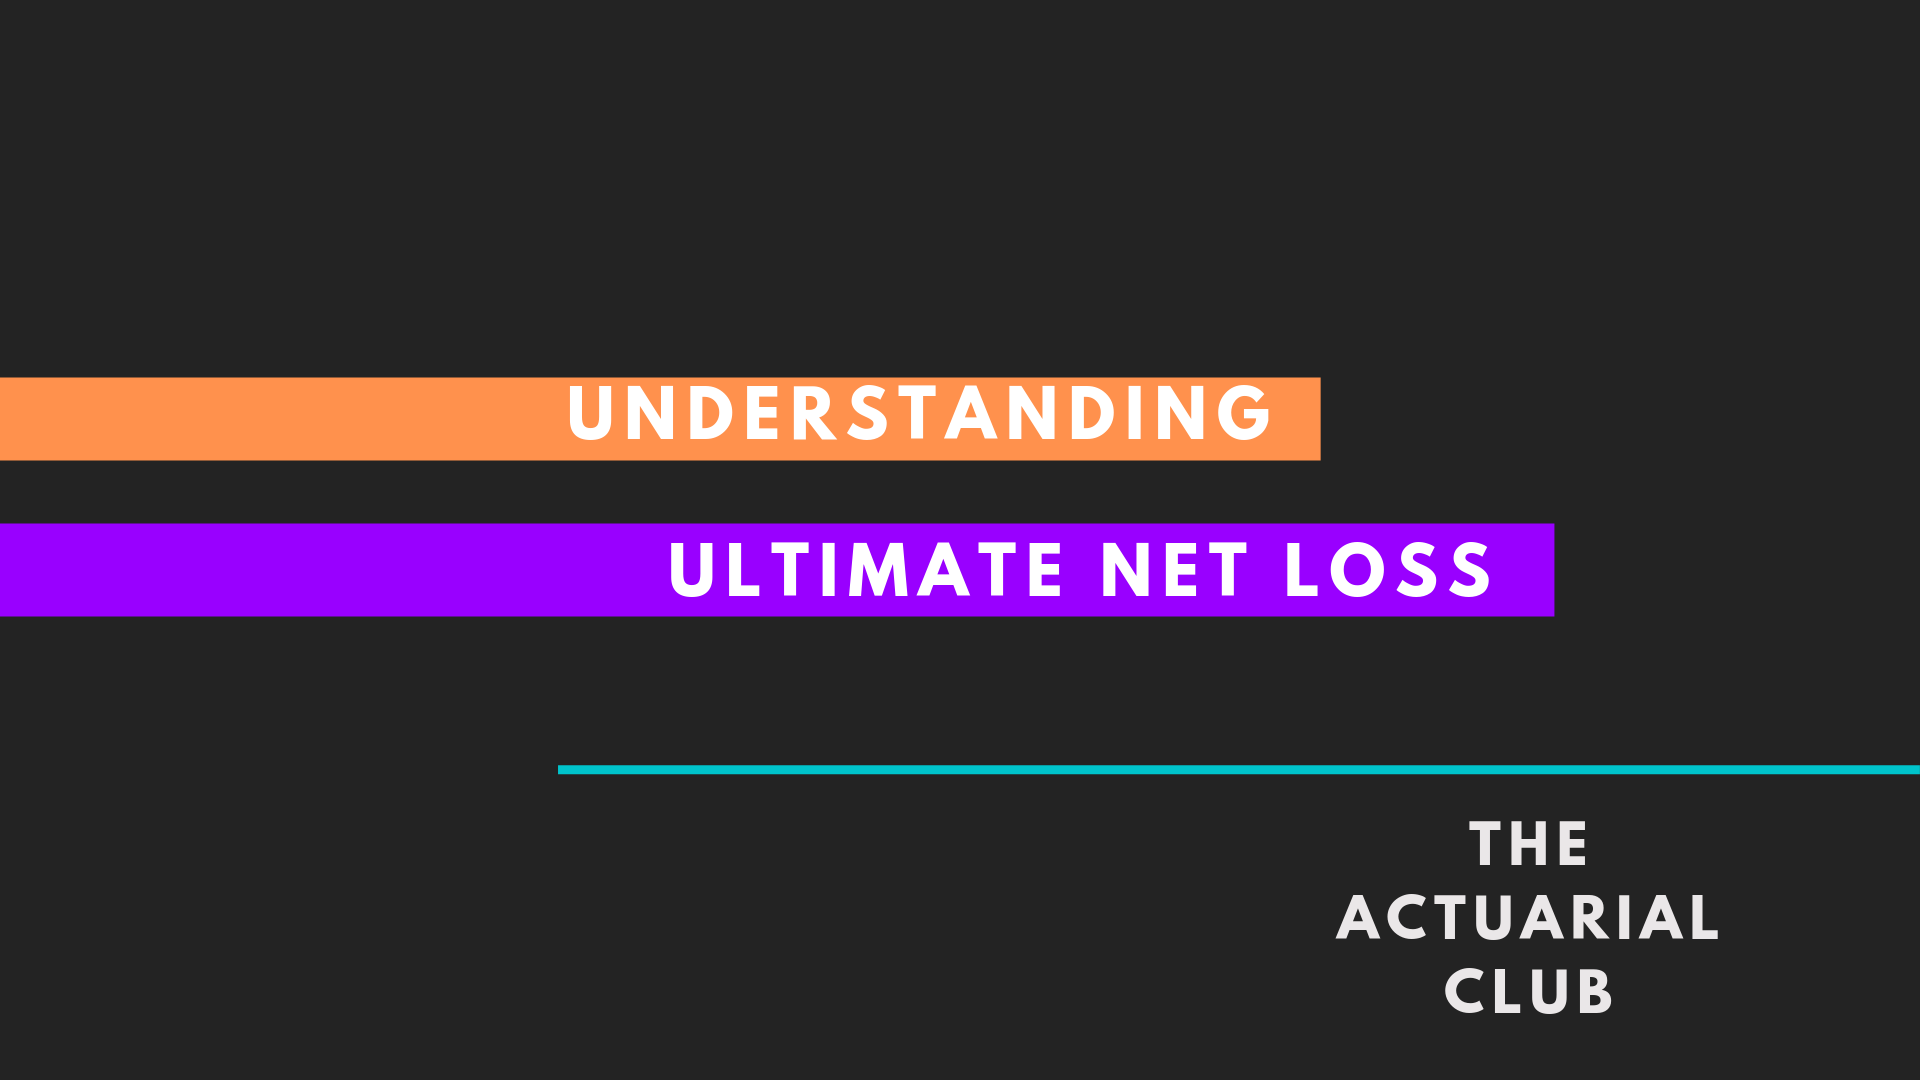 Ultimate Net Loss, third party recovery, reinsurance recovery, salvage